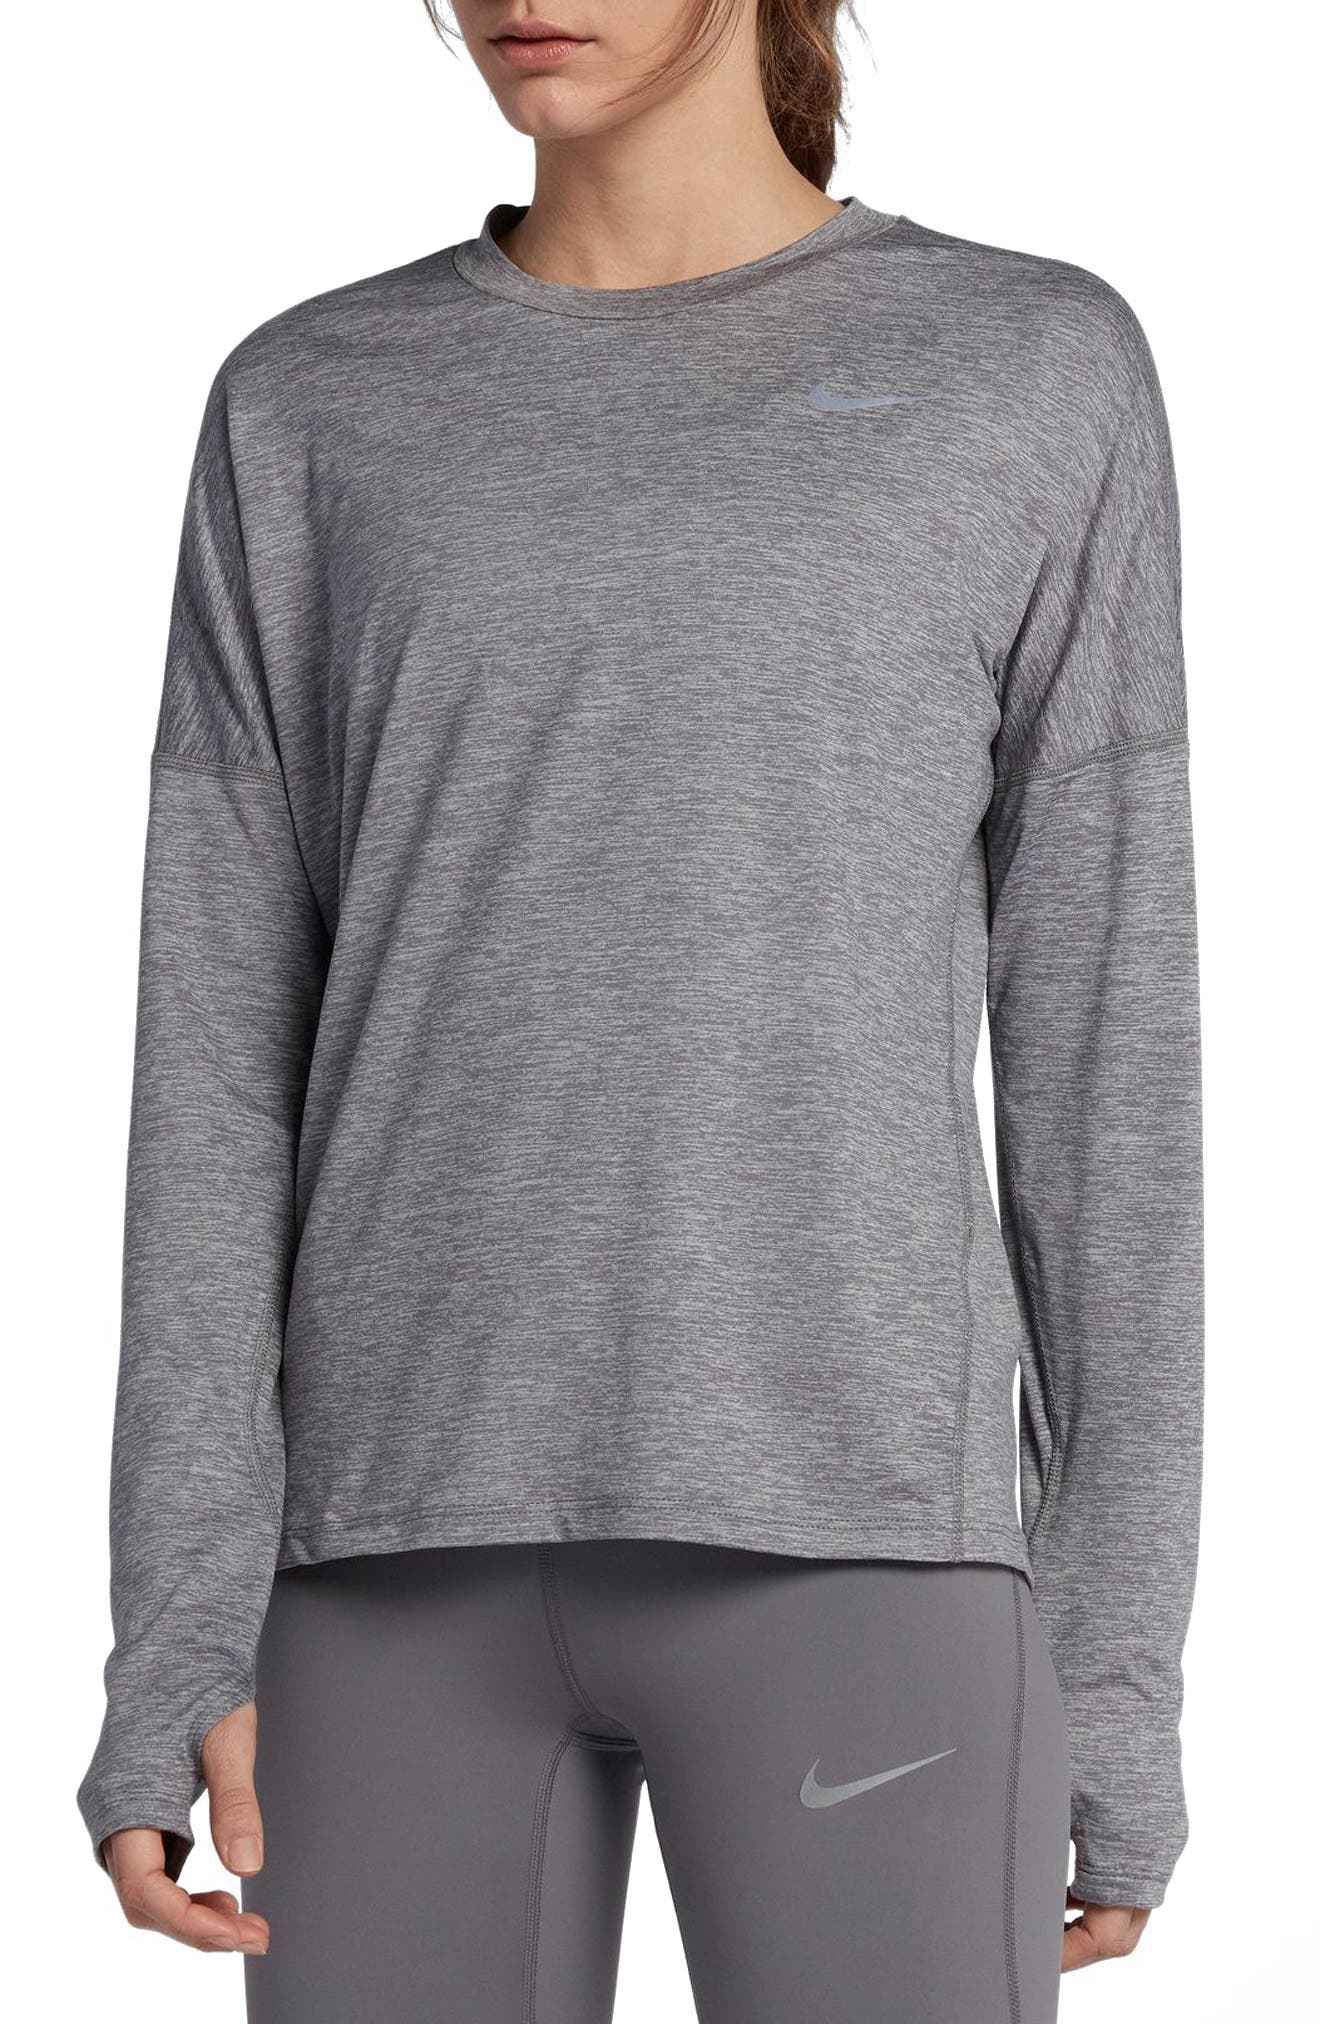 NIKE,                             Dry Element Long Sleeve Top,                             Main thumbnail 1, color,                             036